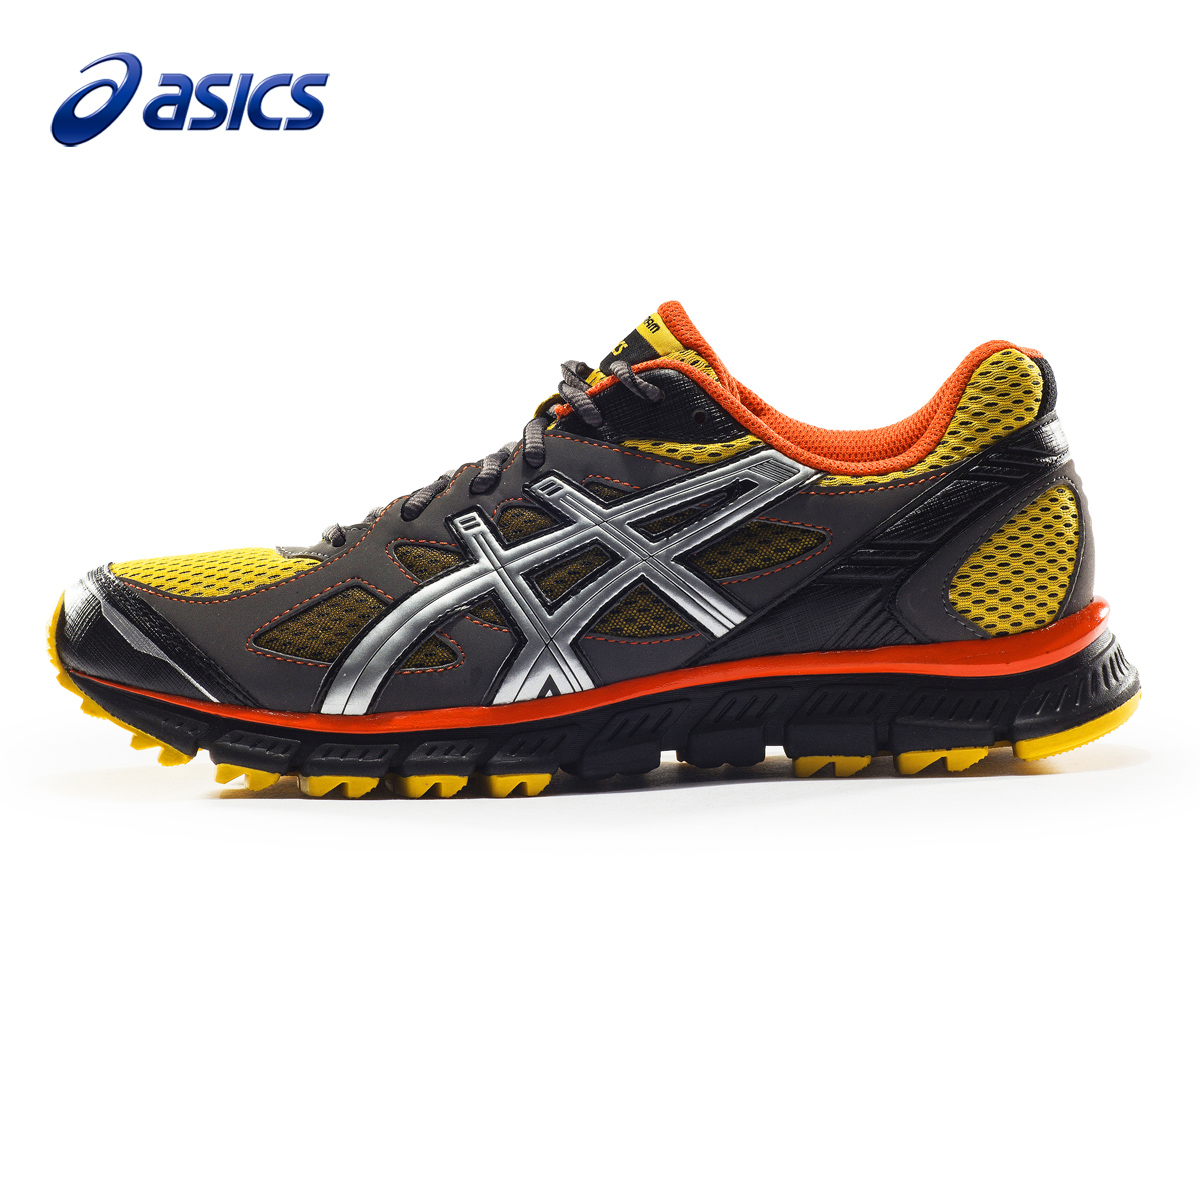 promo code 72913 5f888 Getting professional ASICS running shoes trail runners multicolor GEL-SCRAM  male and female models T2J1N